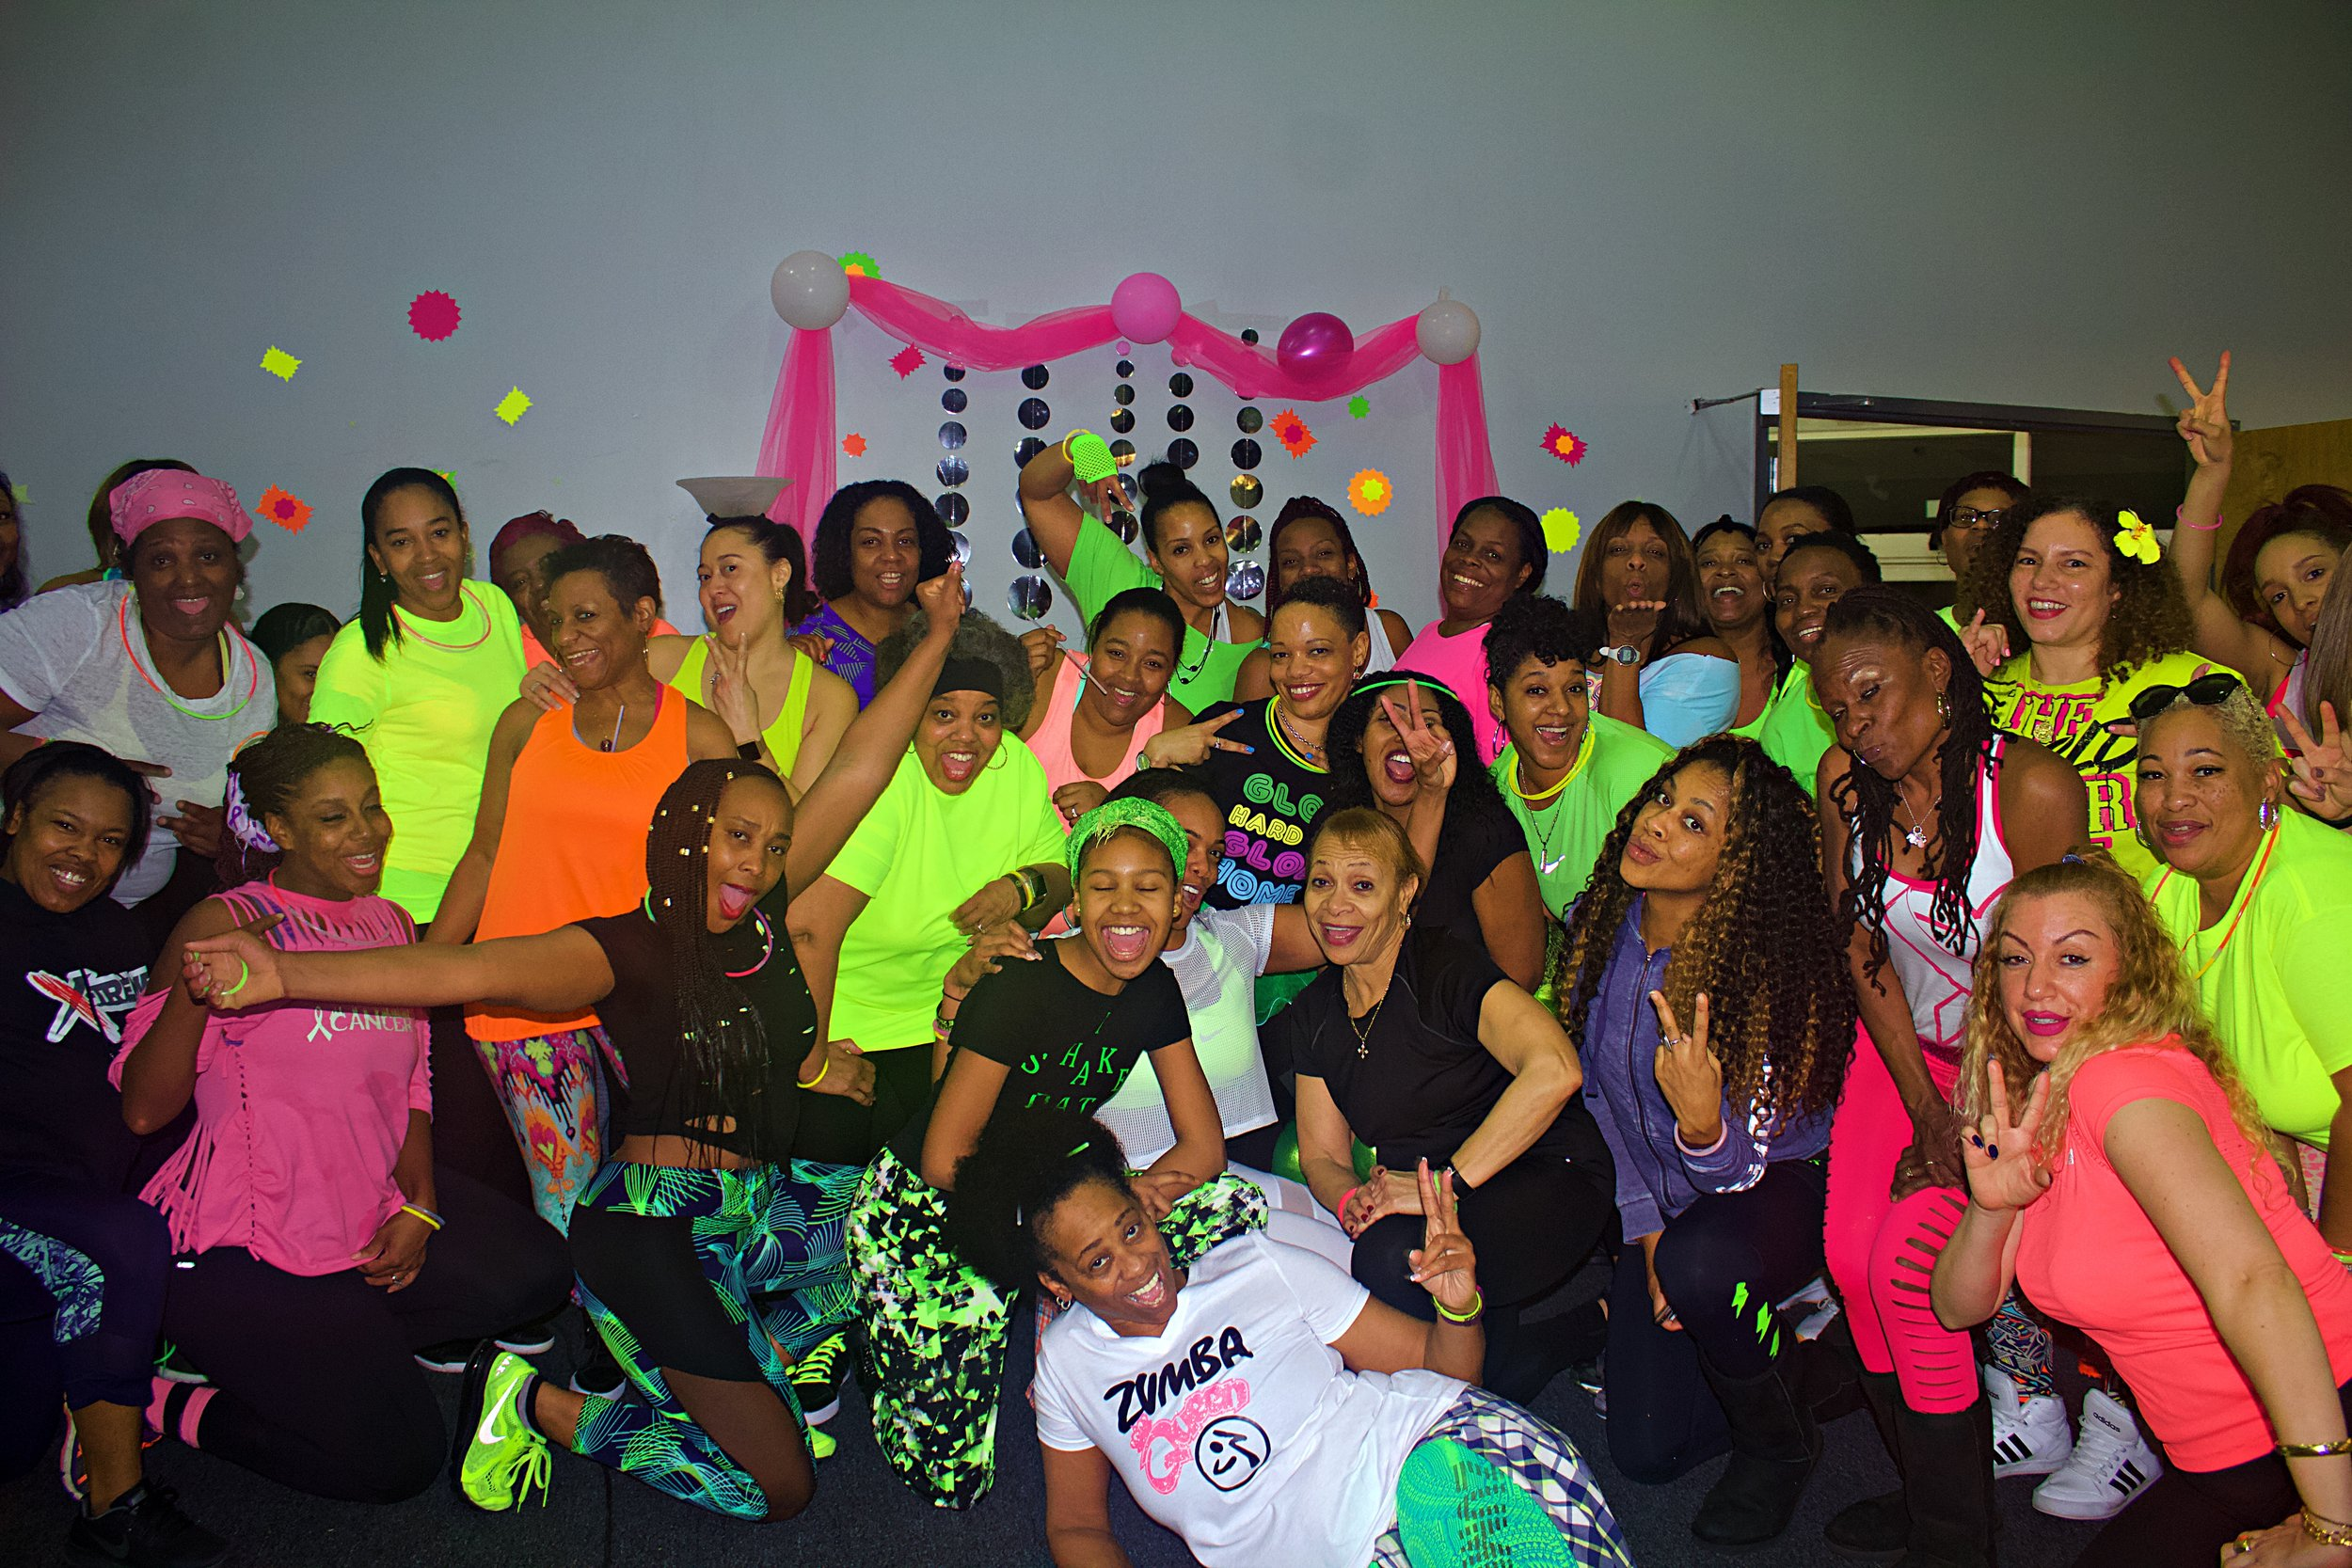 BREAST CANCER AWARENESS GLOW PARTY